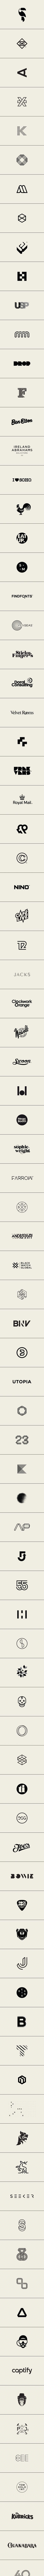 100+ Marques & Logotypes by Mash Creative